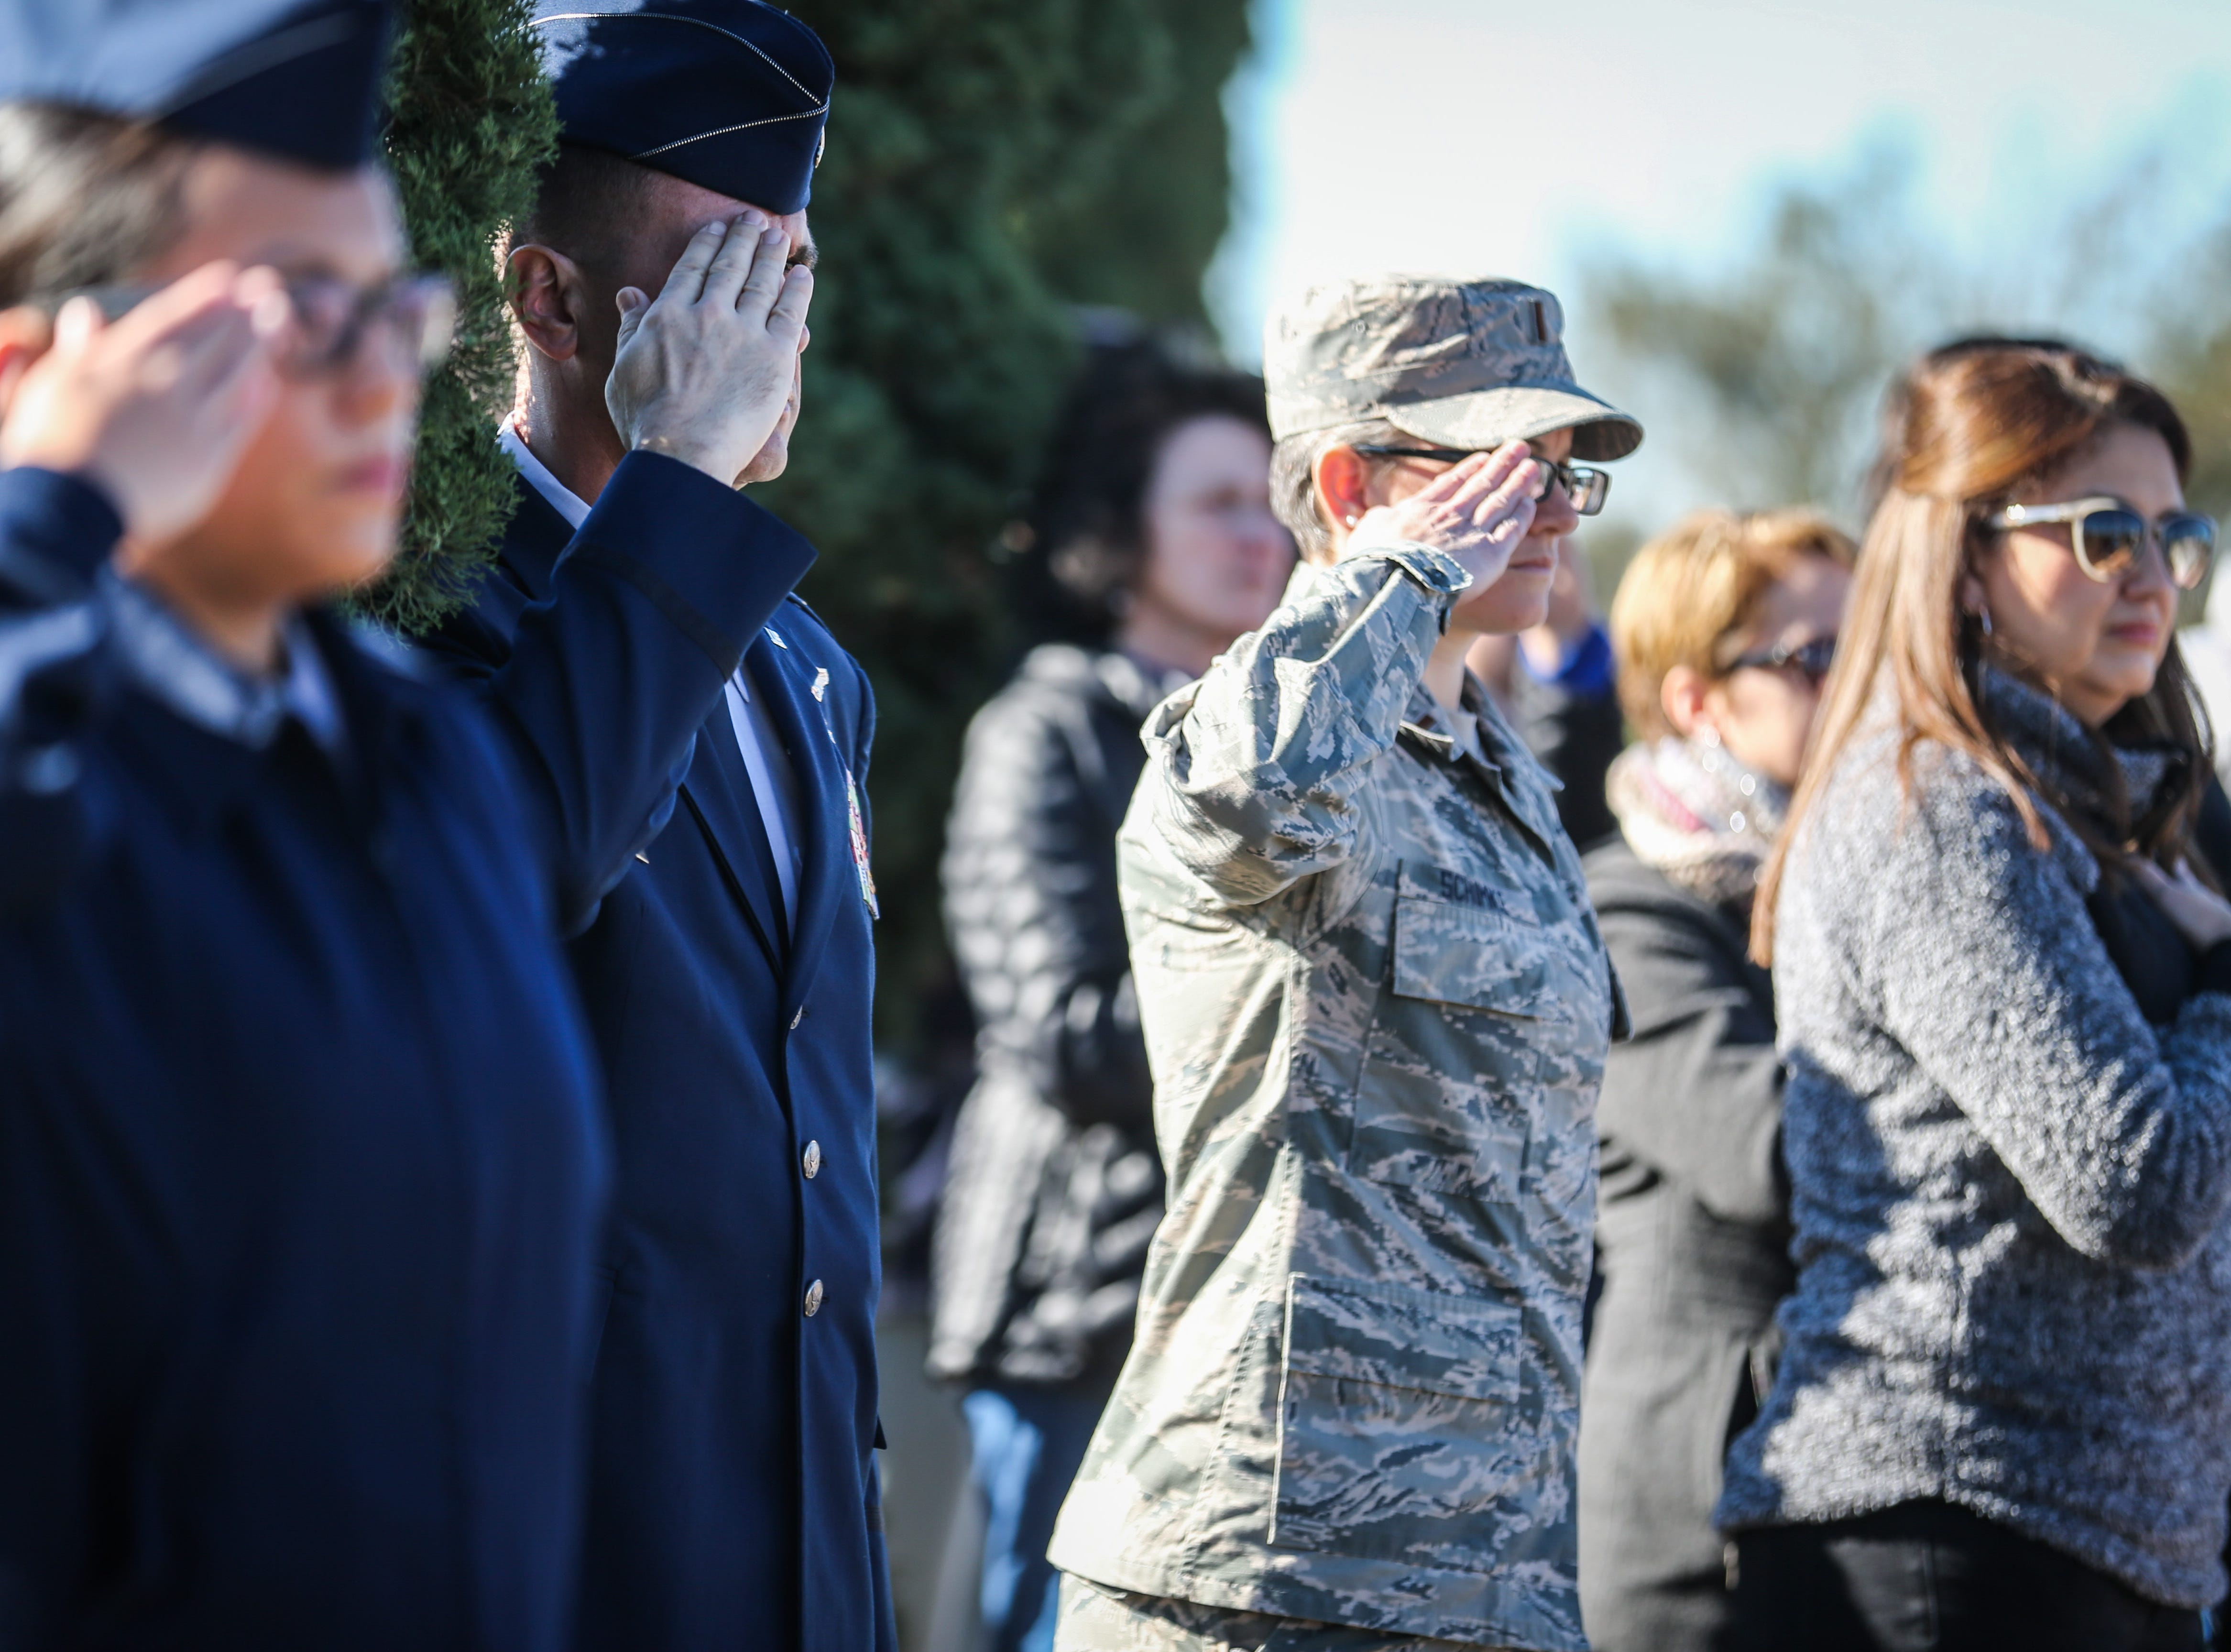 Attendees salute during the Wreaths Across America ceremony Saturday, Dec. 15, 2018, at Belvedere Memorial Park.